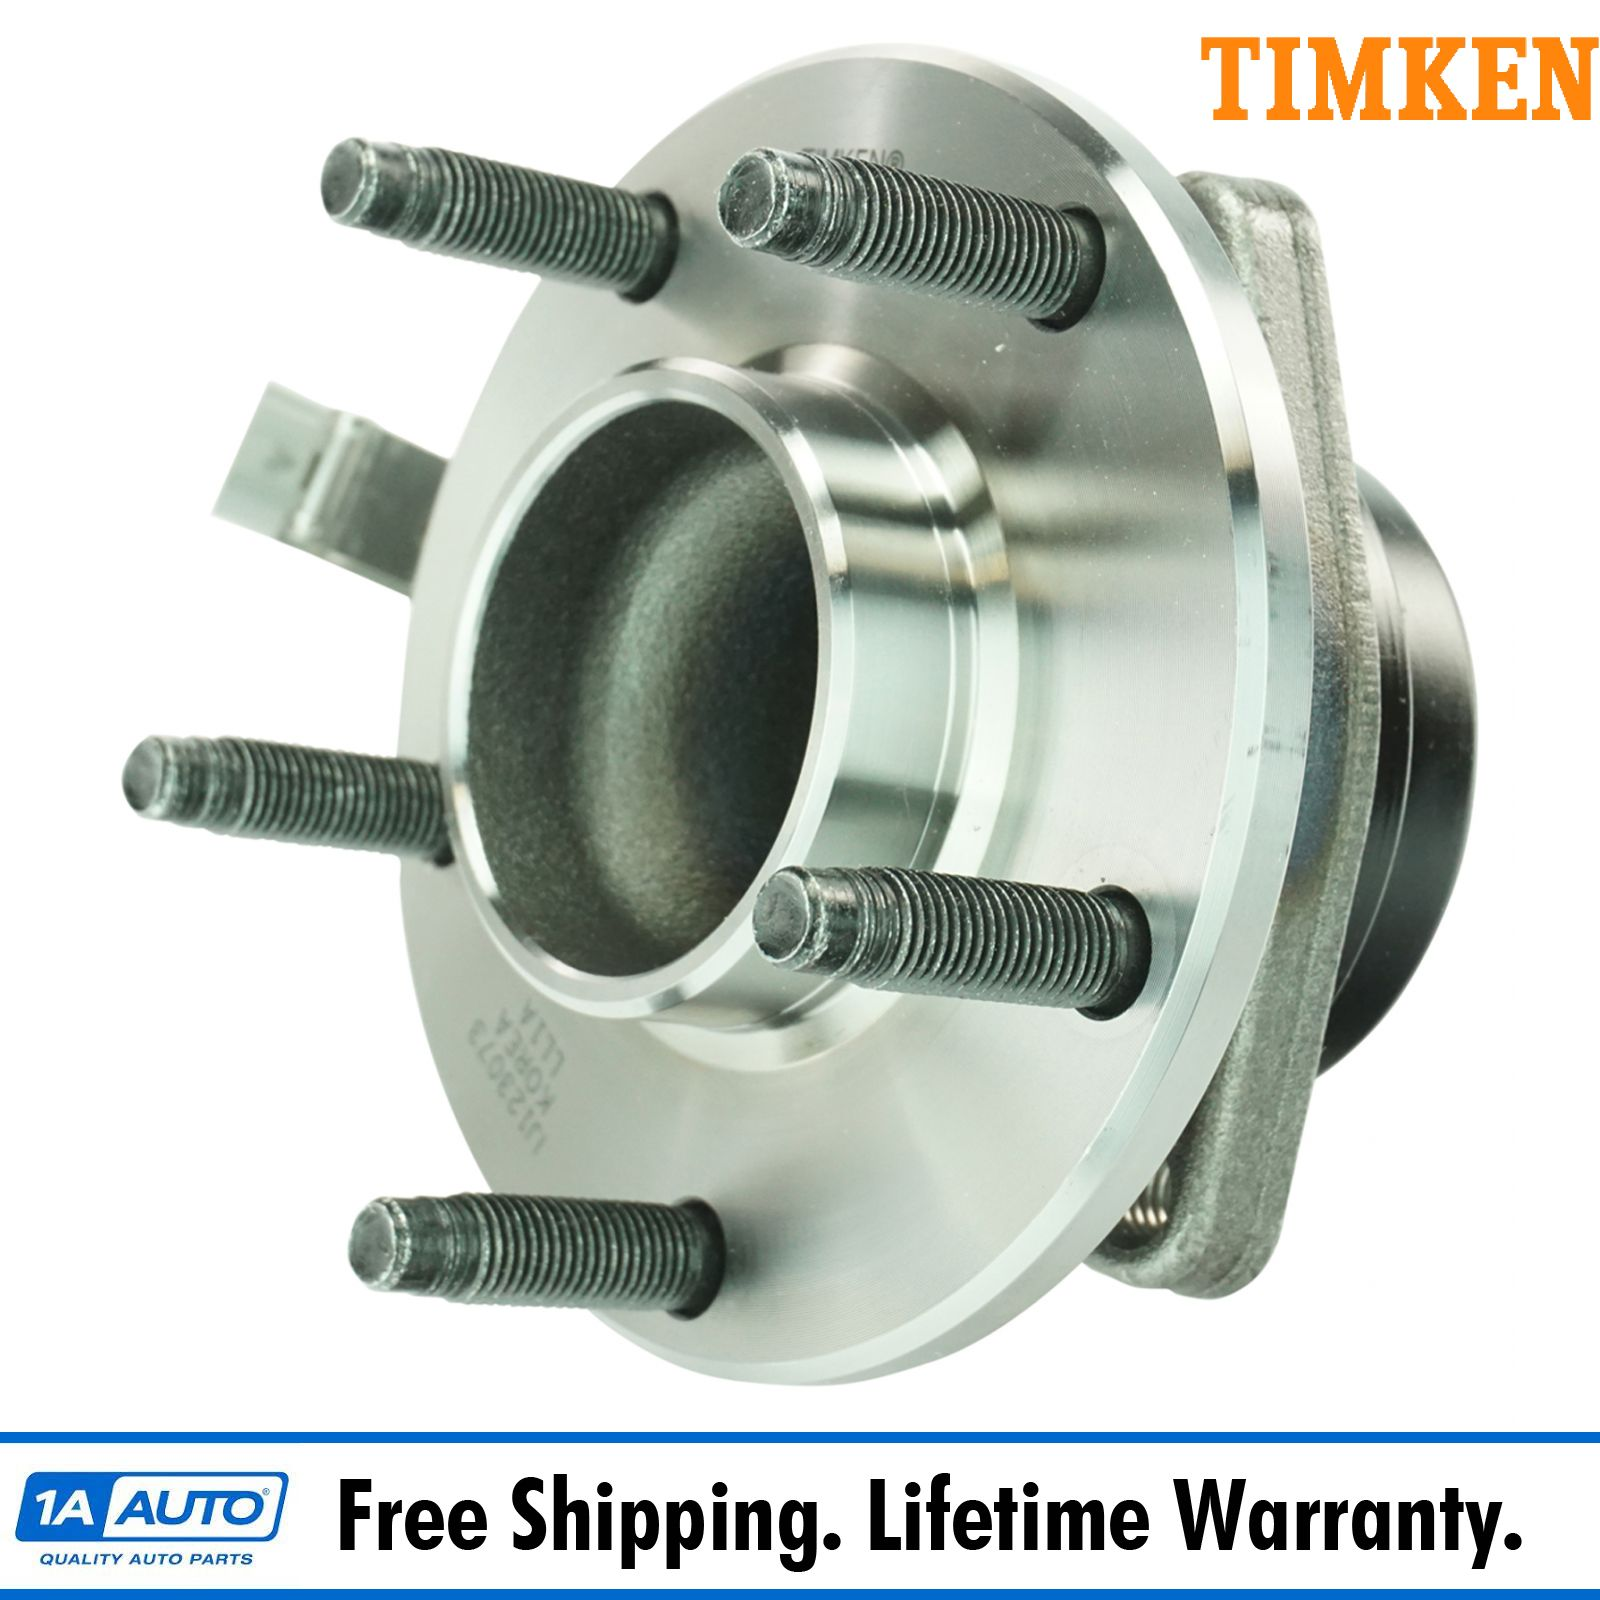 Details about TIMKEN Front Wheel Hub & Bearing 5 Lug For Chevy Corvette C5  C6 Cadillac XLR